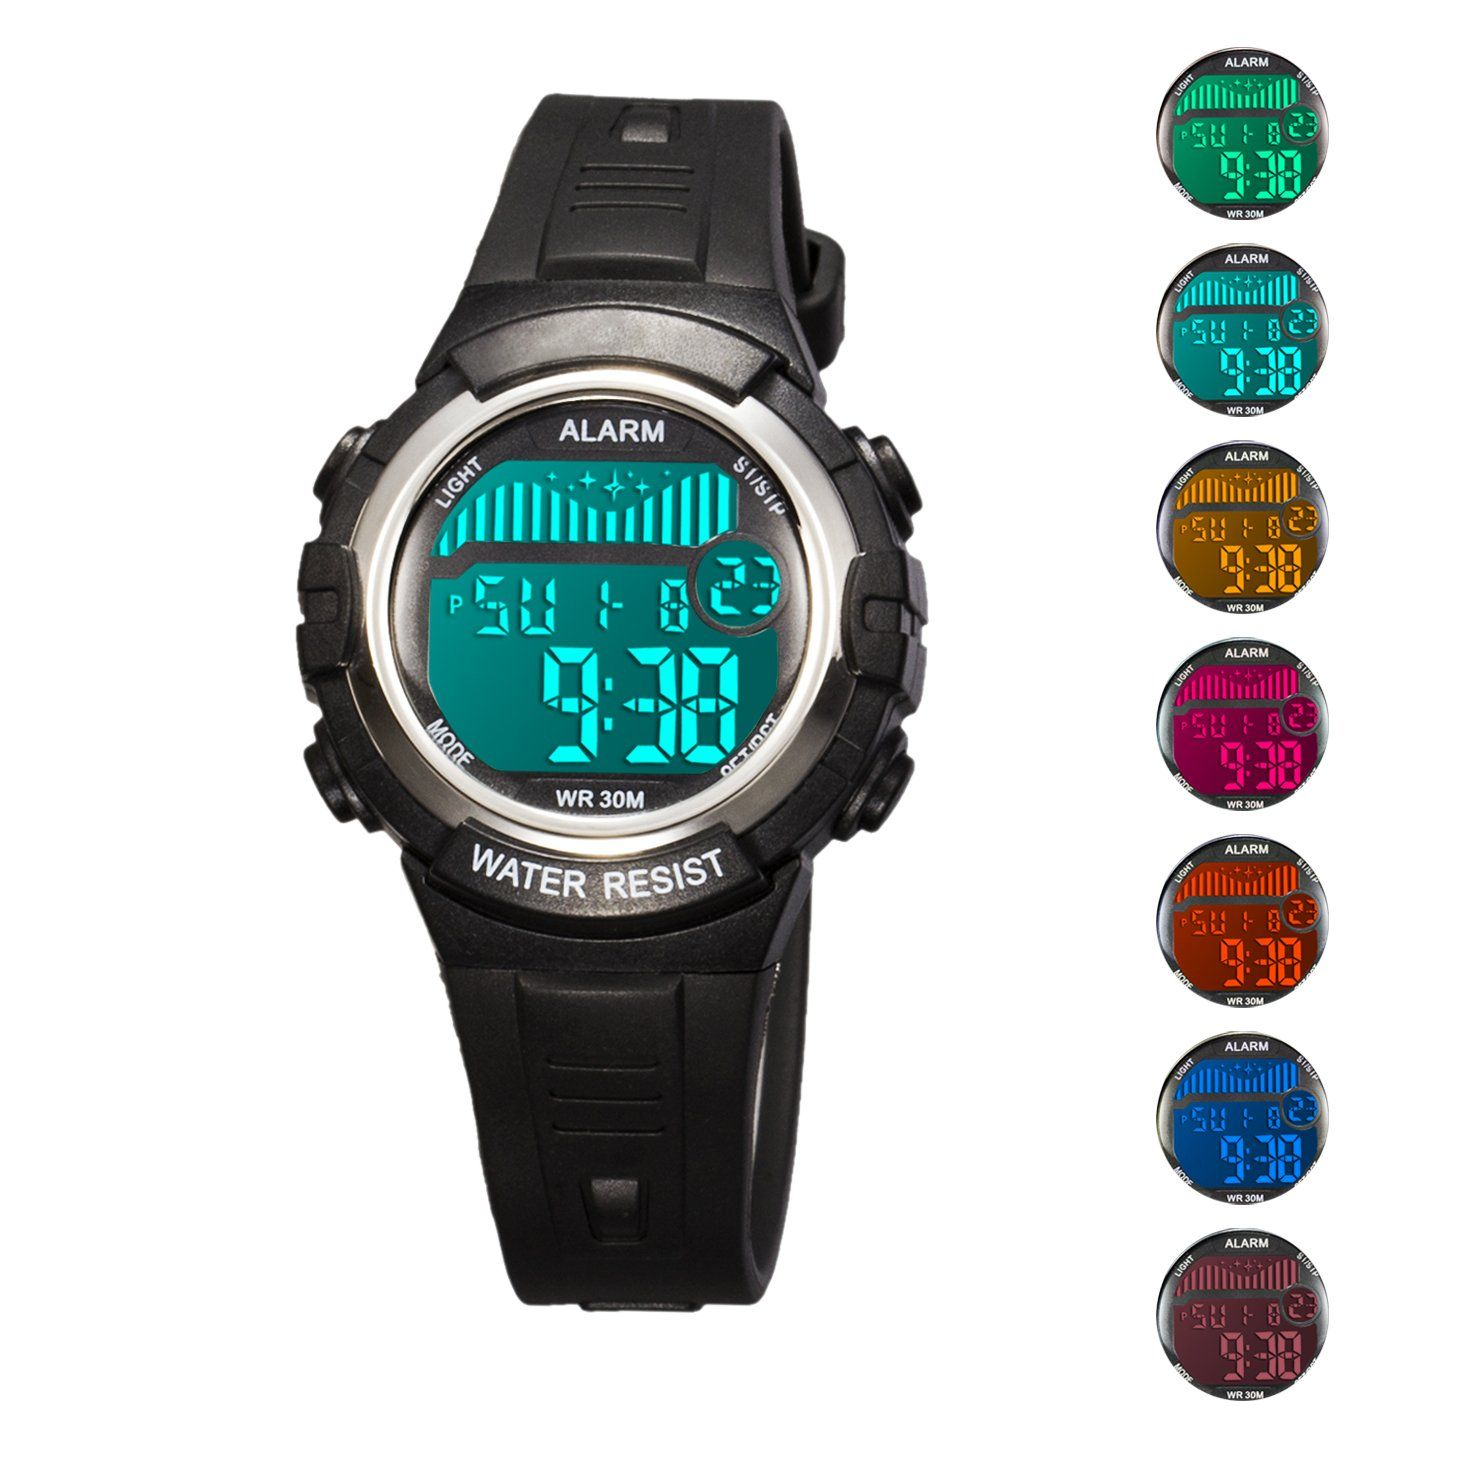 cfa0456dd Kids Digital Sport Watch Outdoor Waterproof Watch with Alarm for Child Boy  Girls Gift LED Kids Watch 7 Colors Led